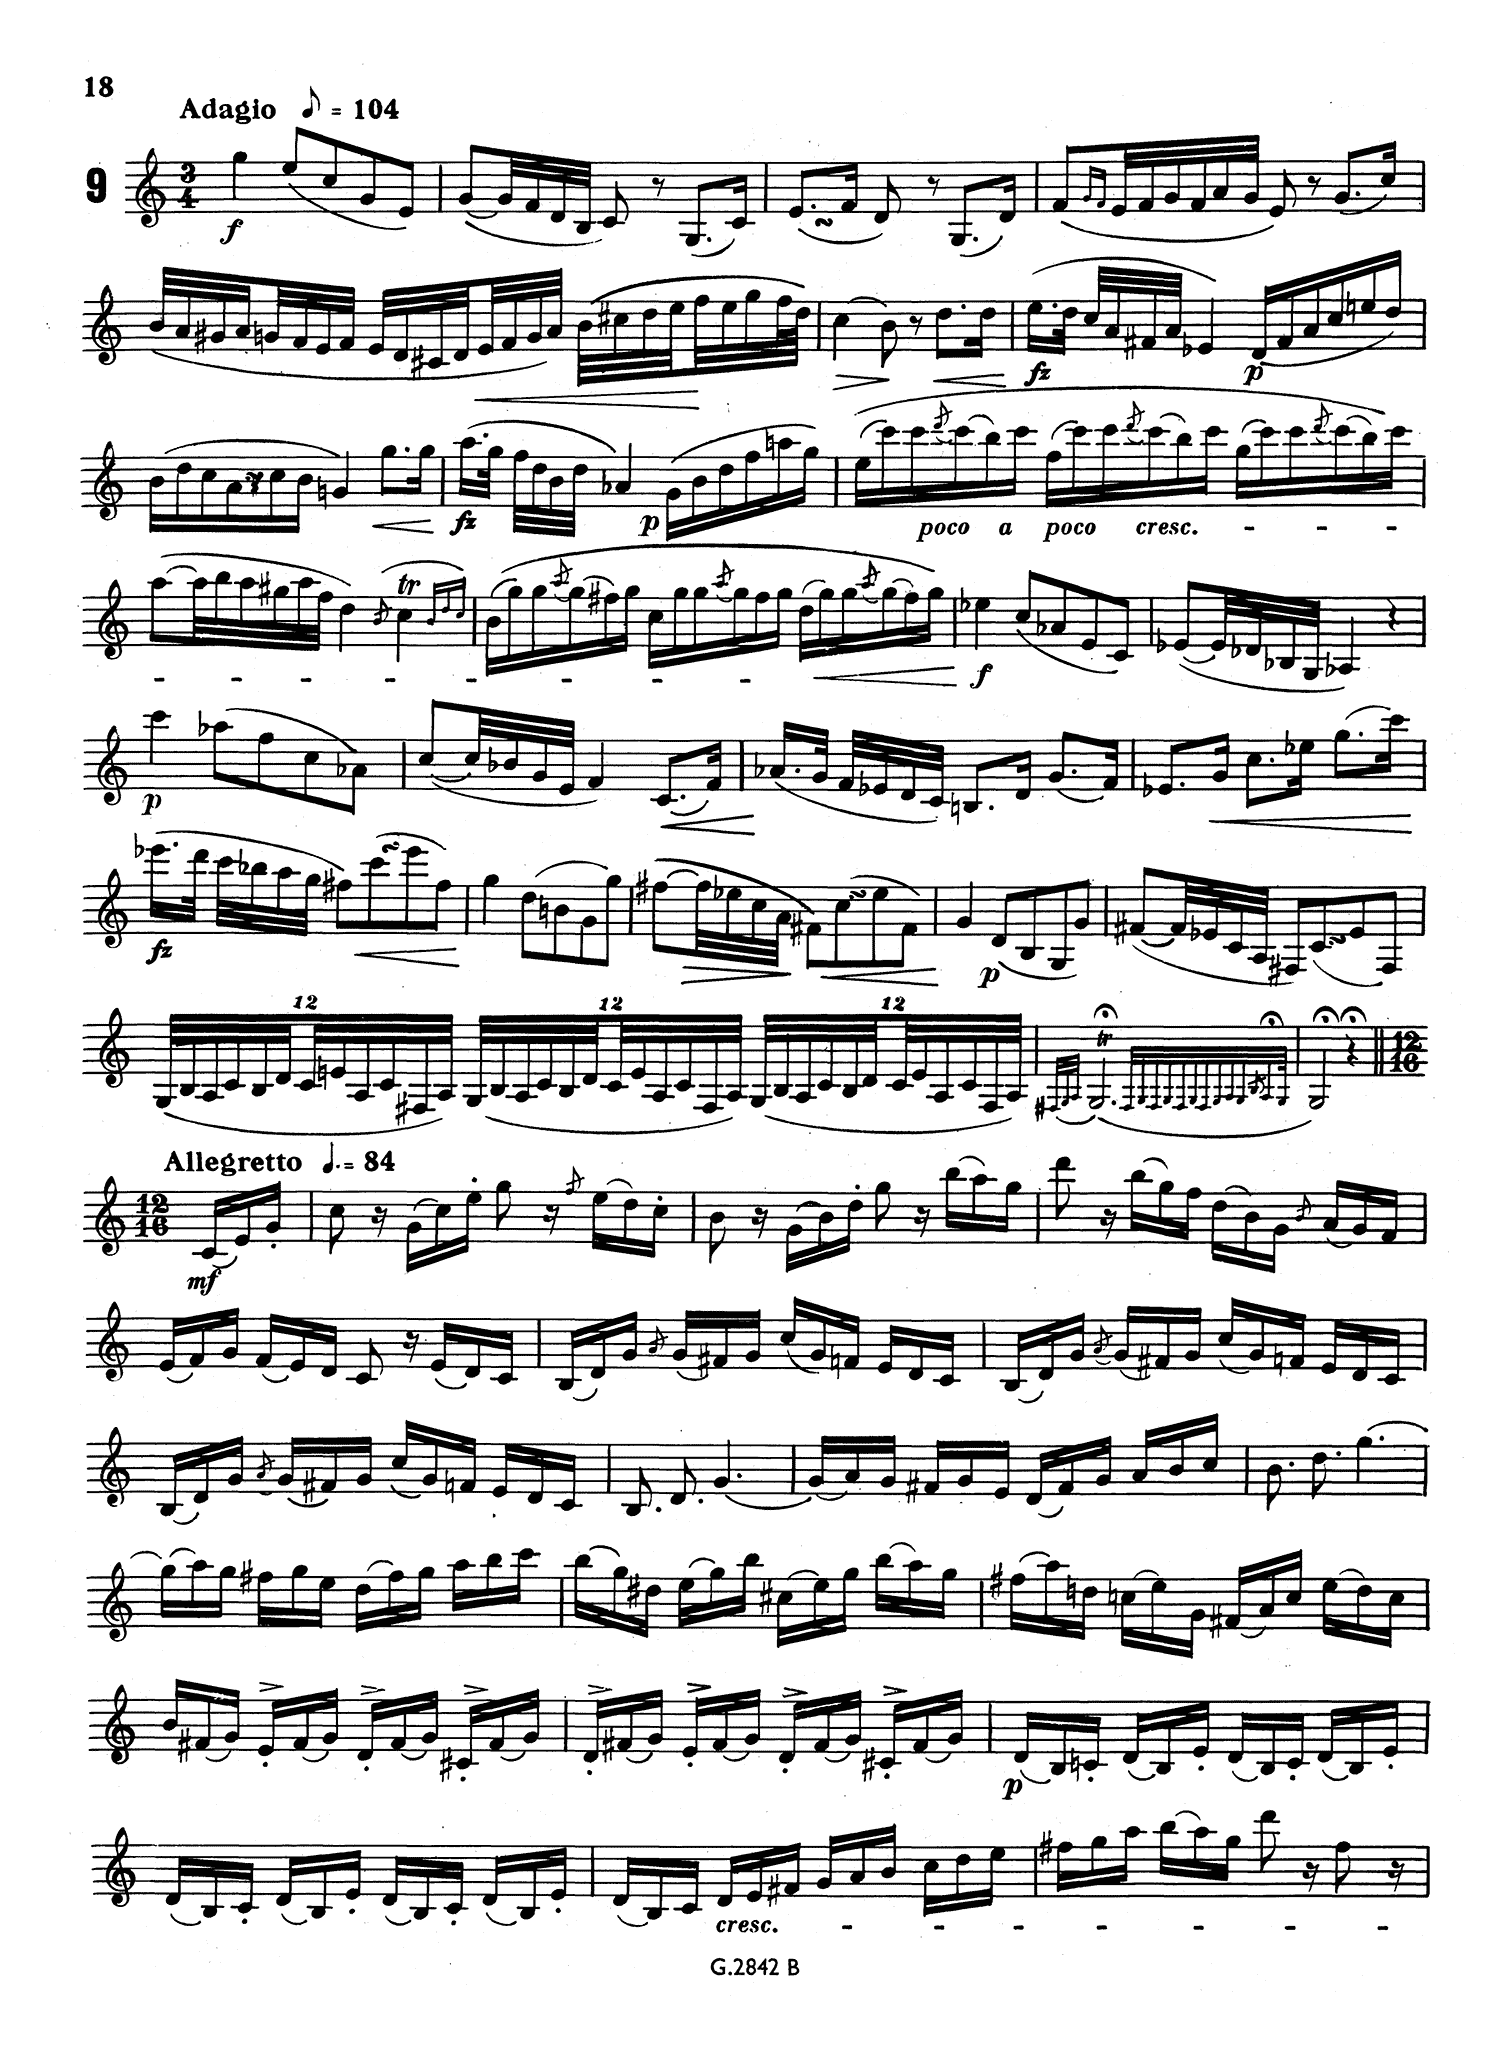 20 Great Etudes from Rode Page 18